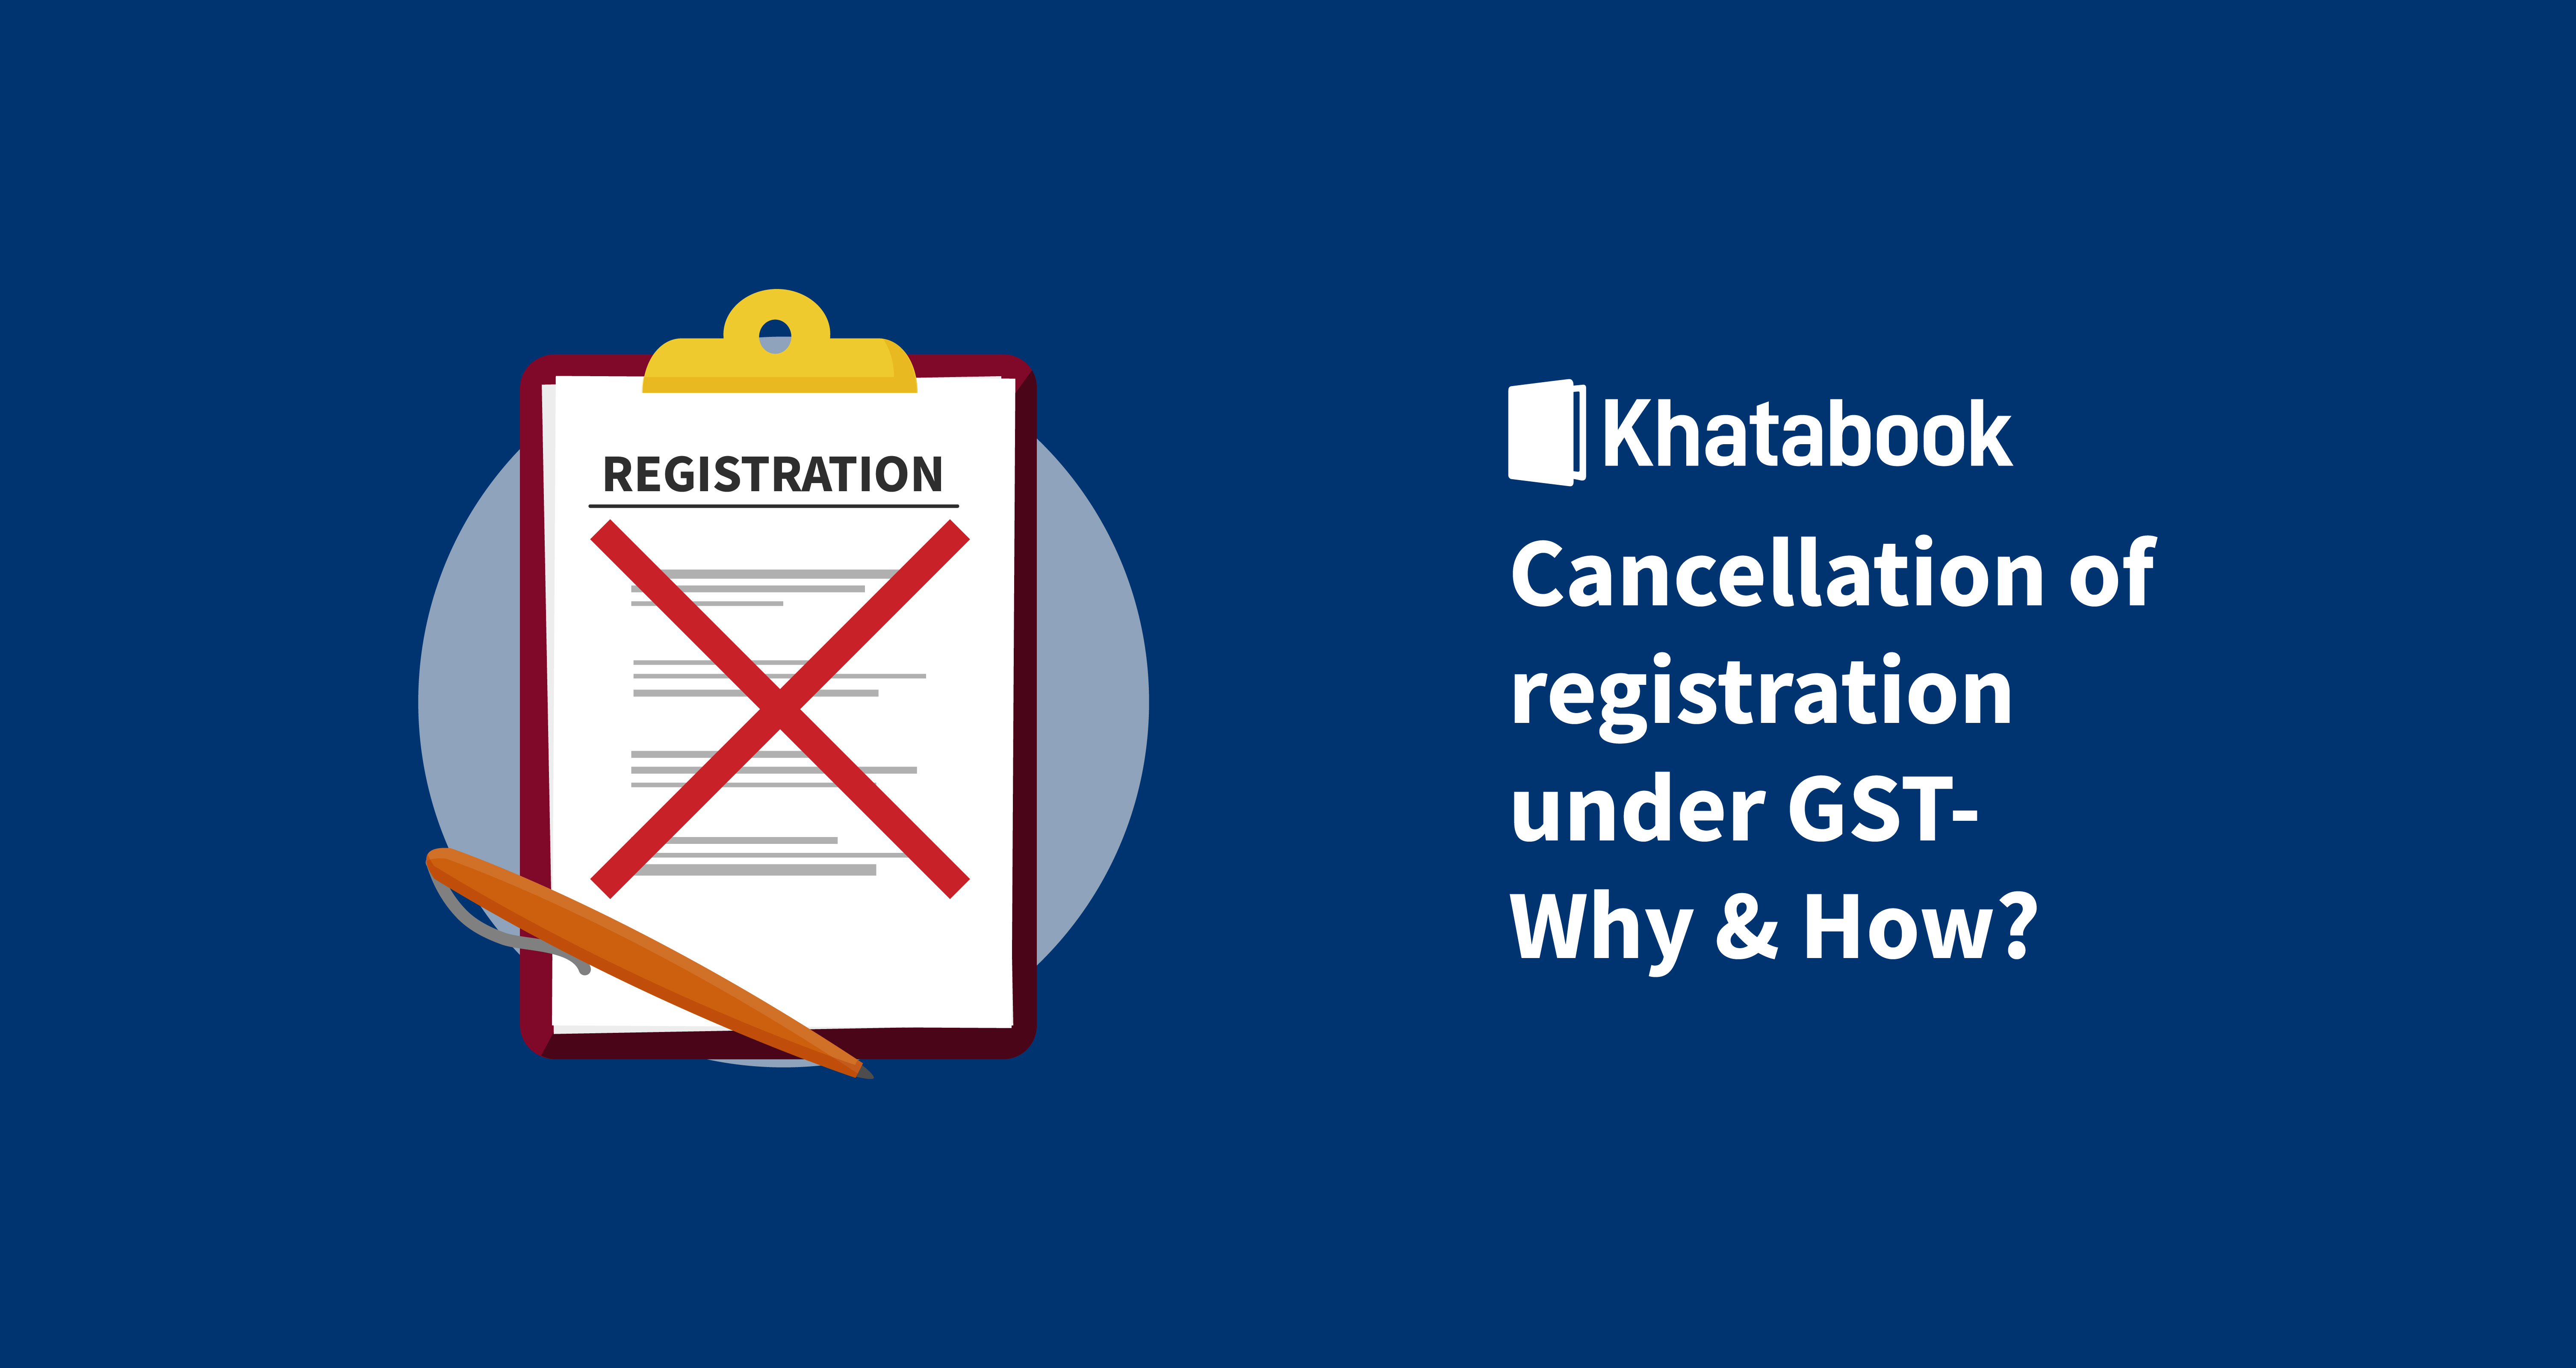 Cancellation of registration under GST- Why & How?